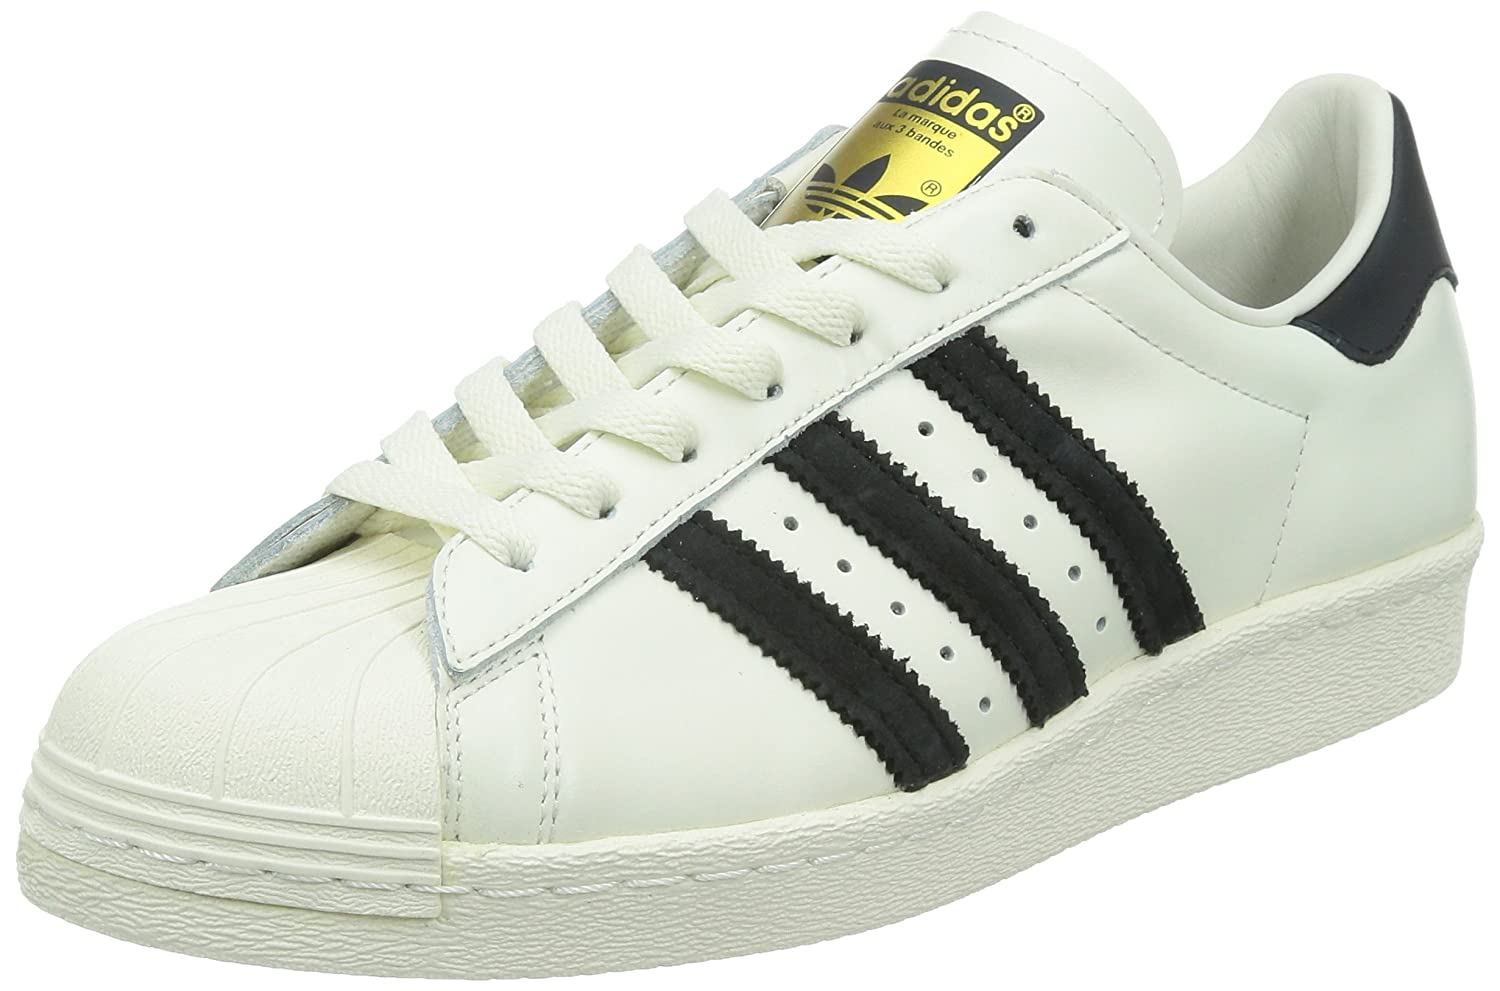 low priced 7d826 b5452 adidas superstar 80s deluxe